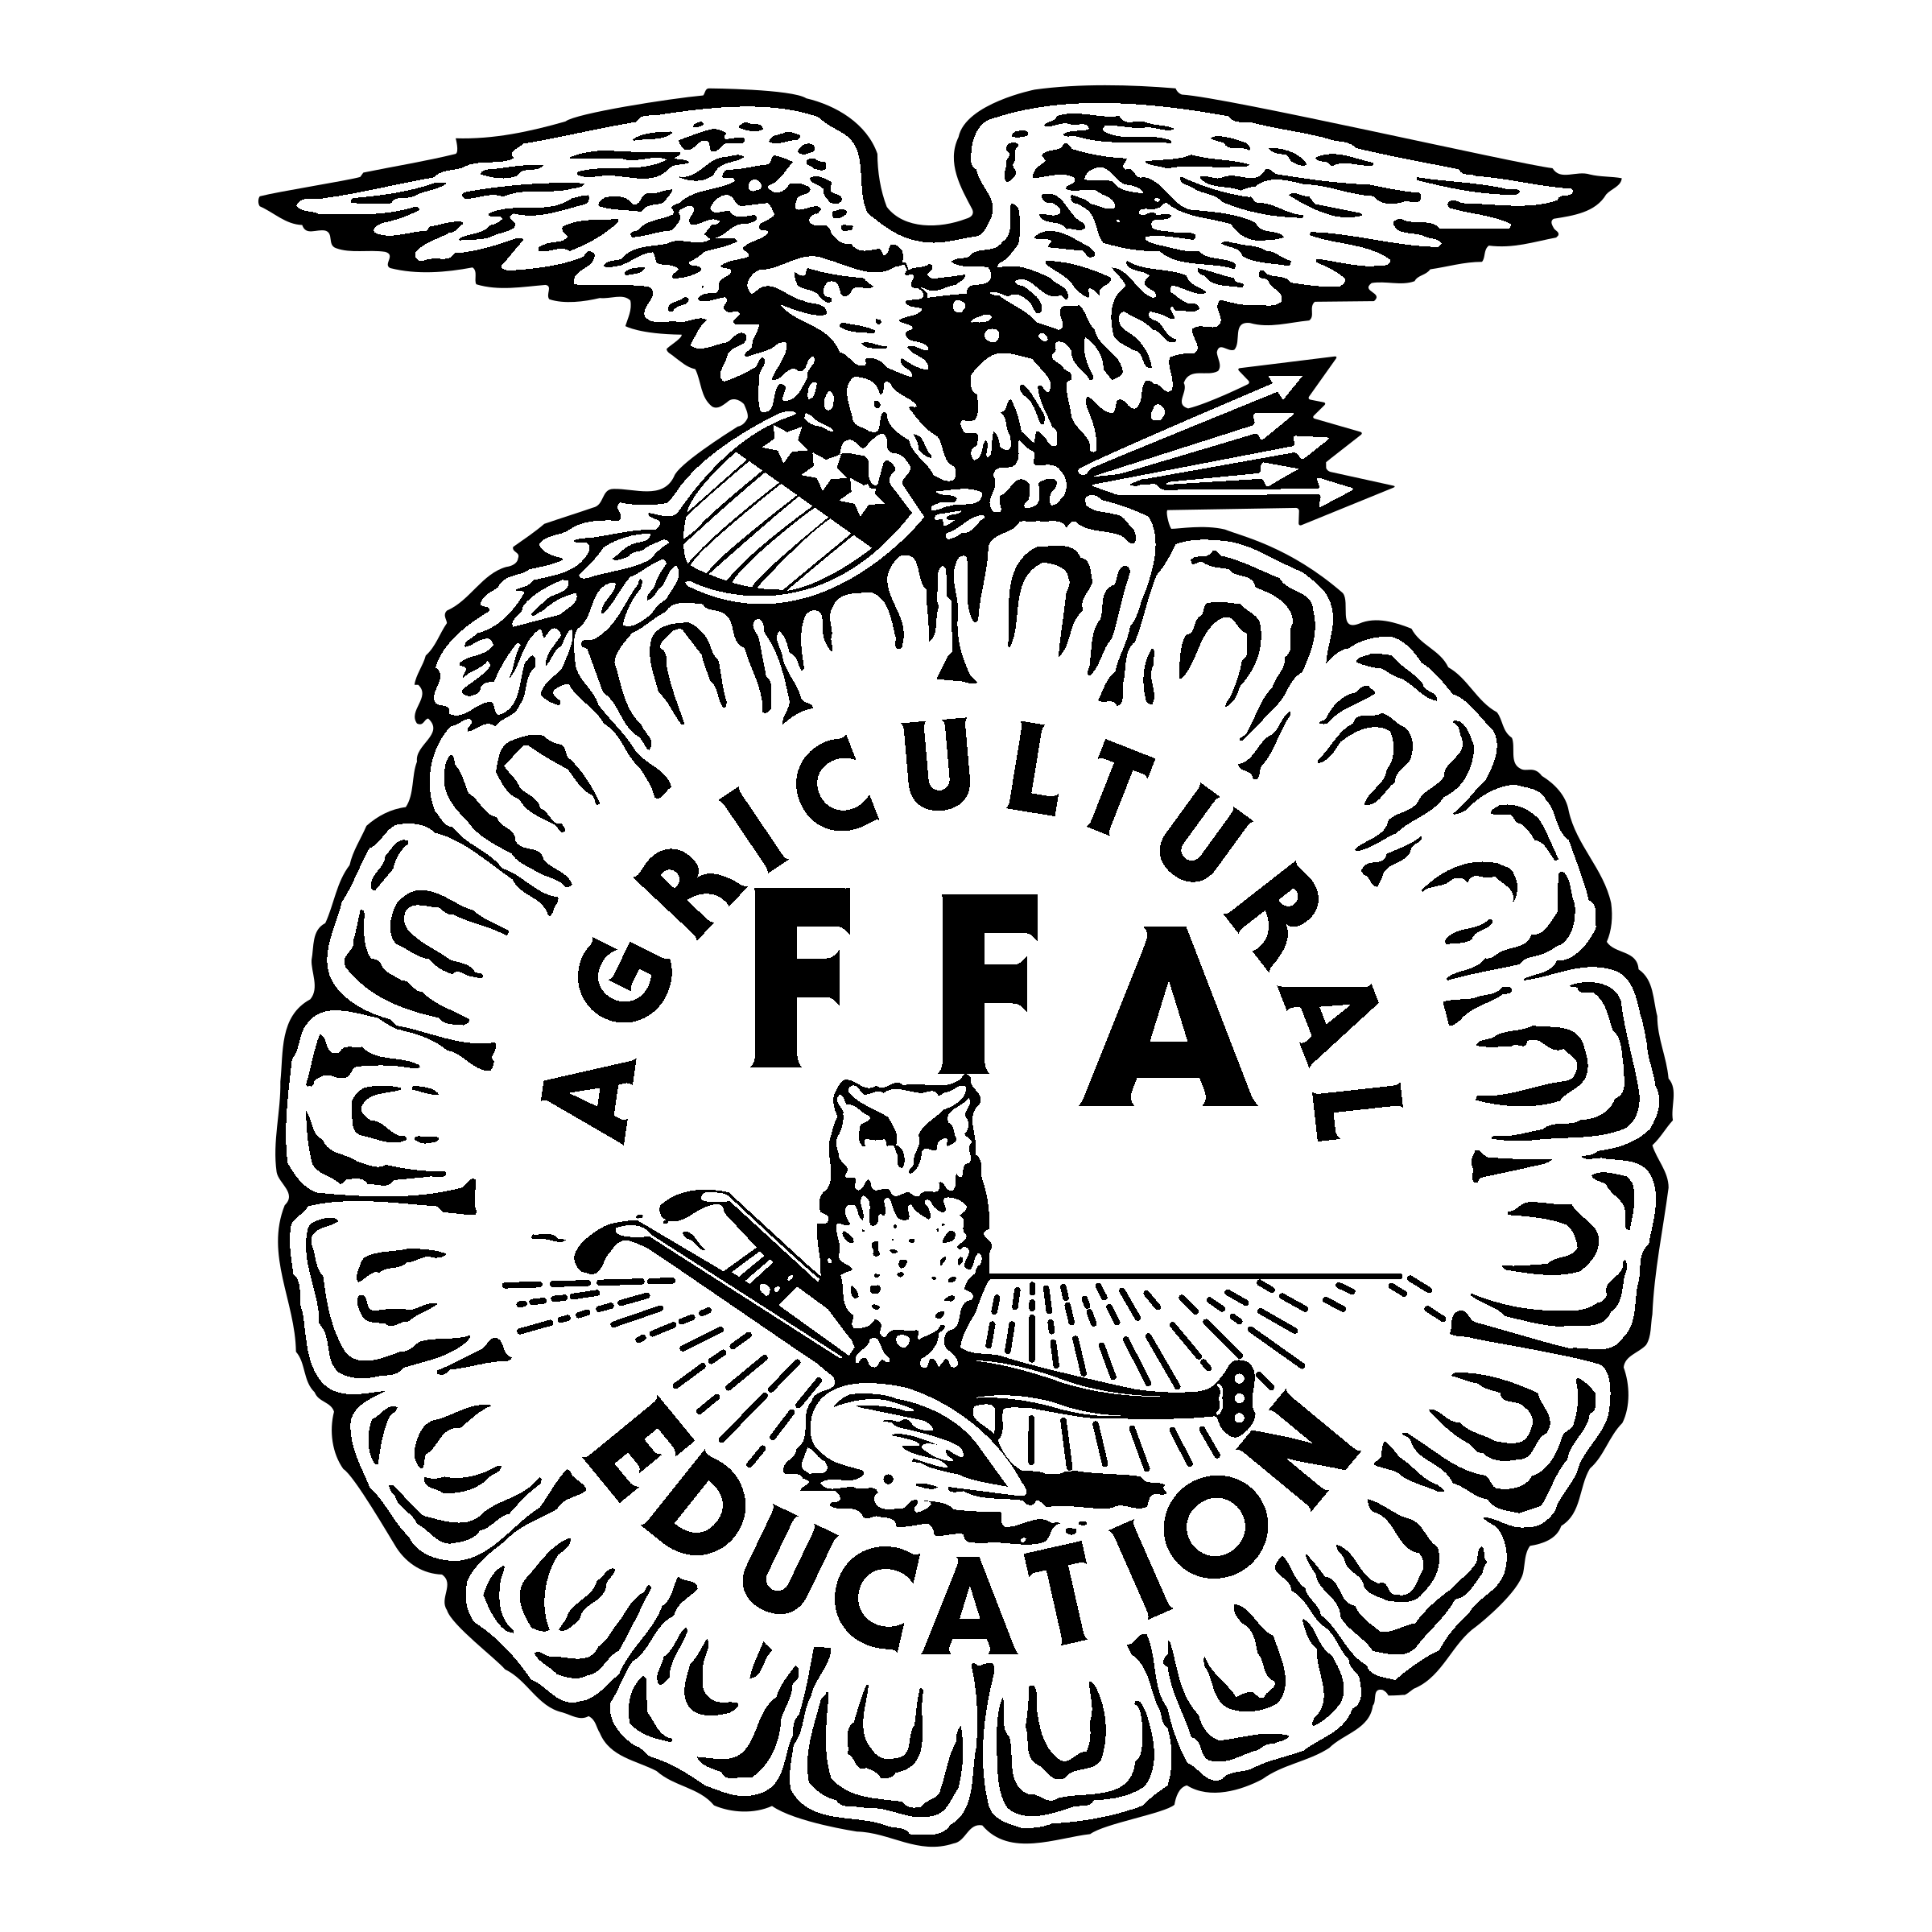 Ffa emblem vector clipart images gallery for free download.